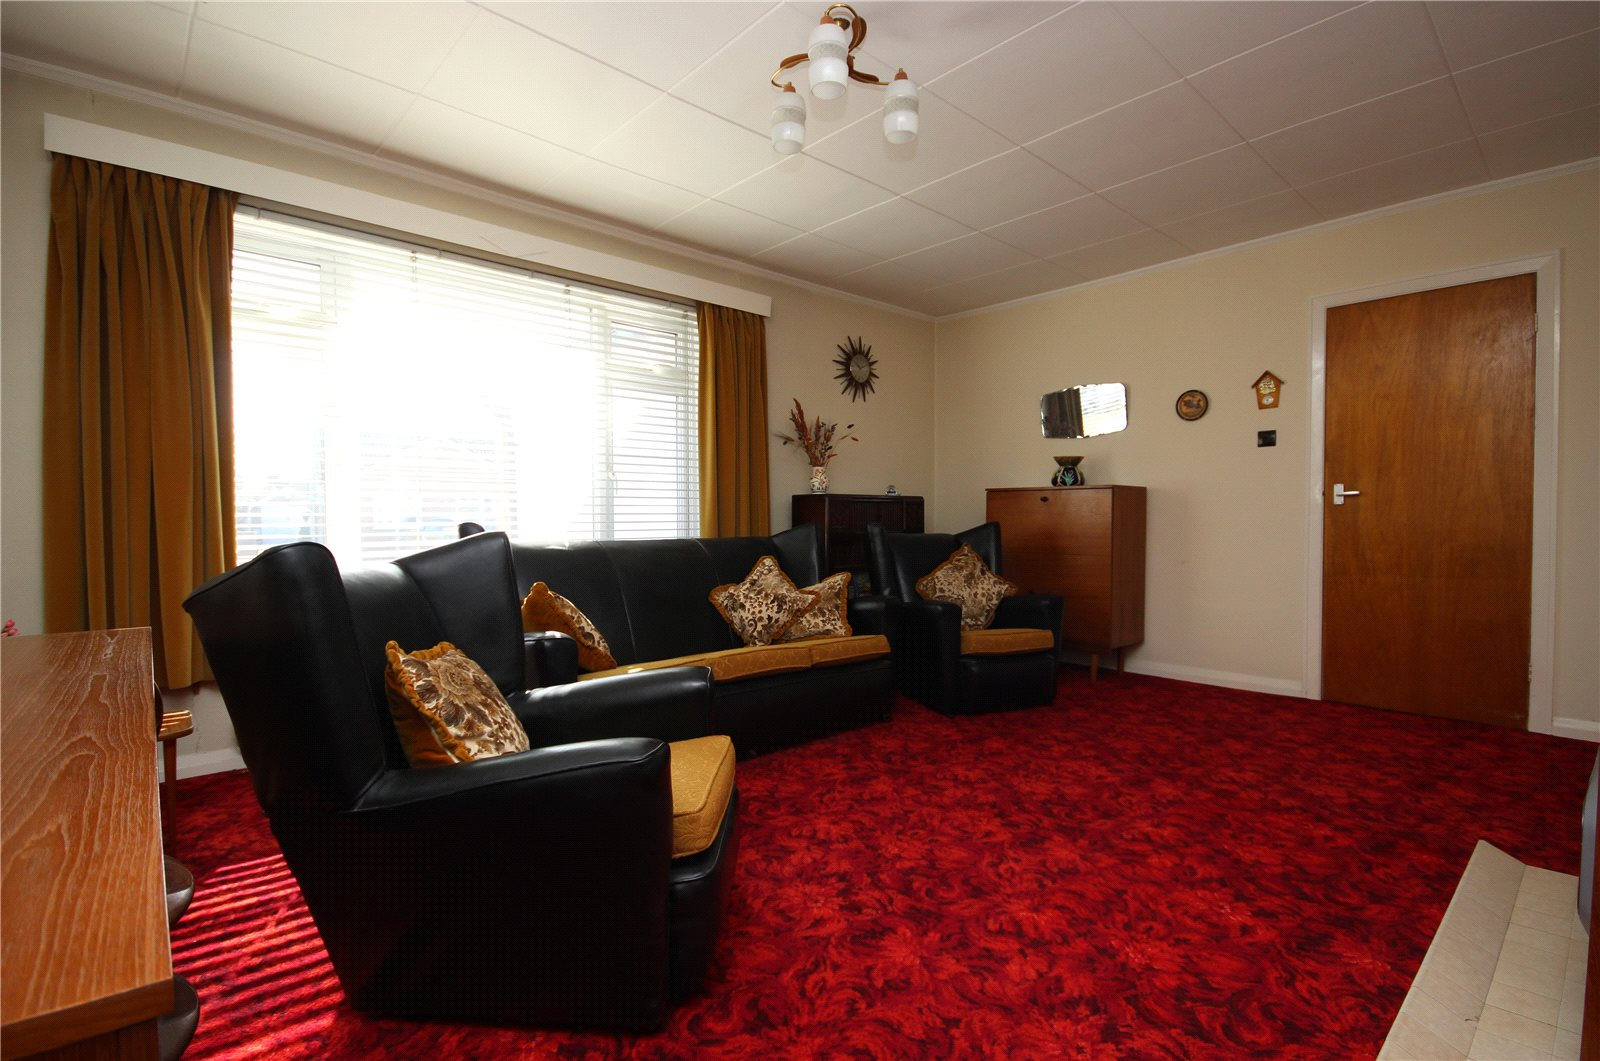 Cj Hole Bradley Stoke 3 Bedroom Bungalow For Sale In